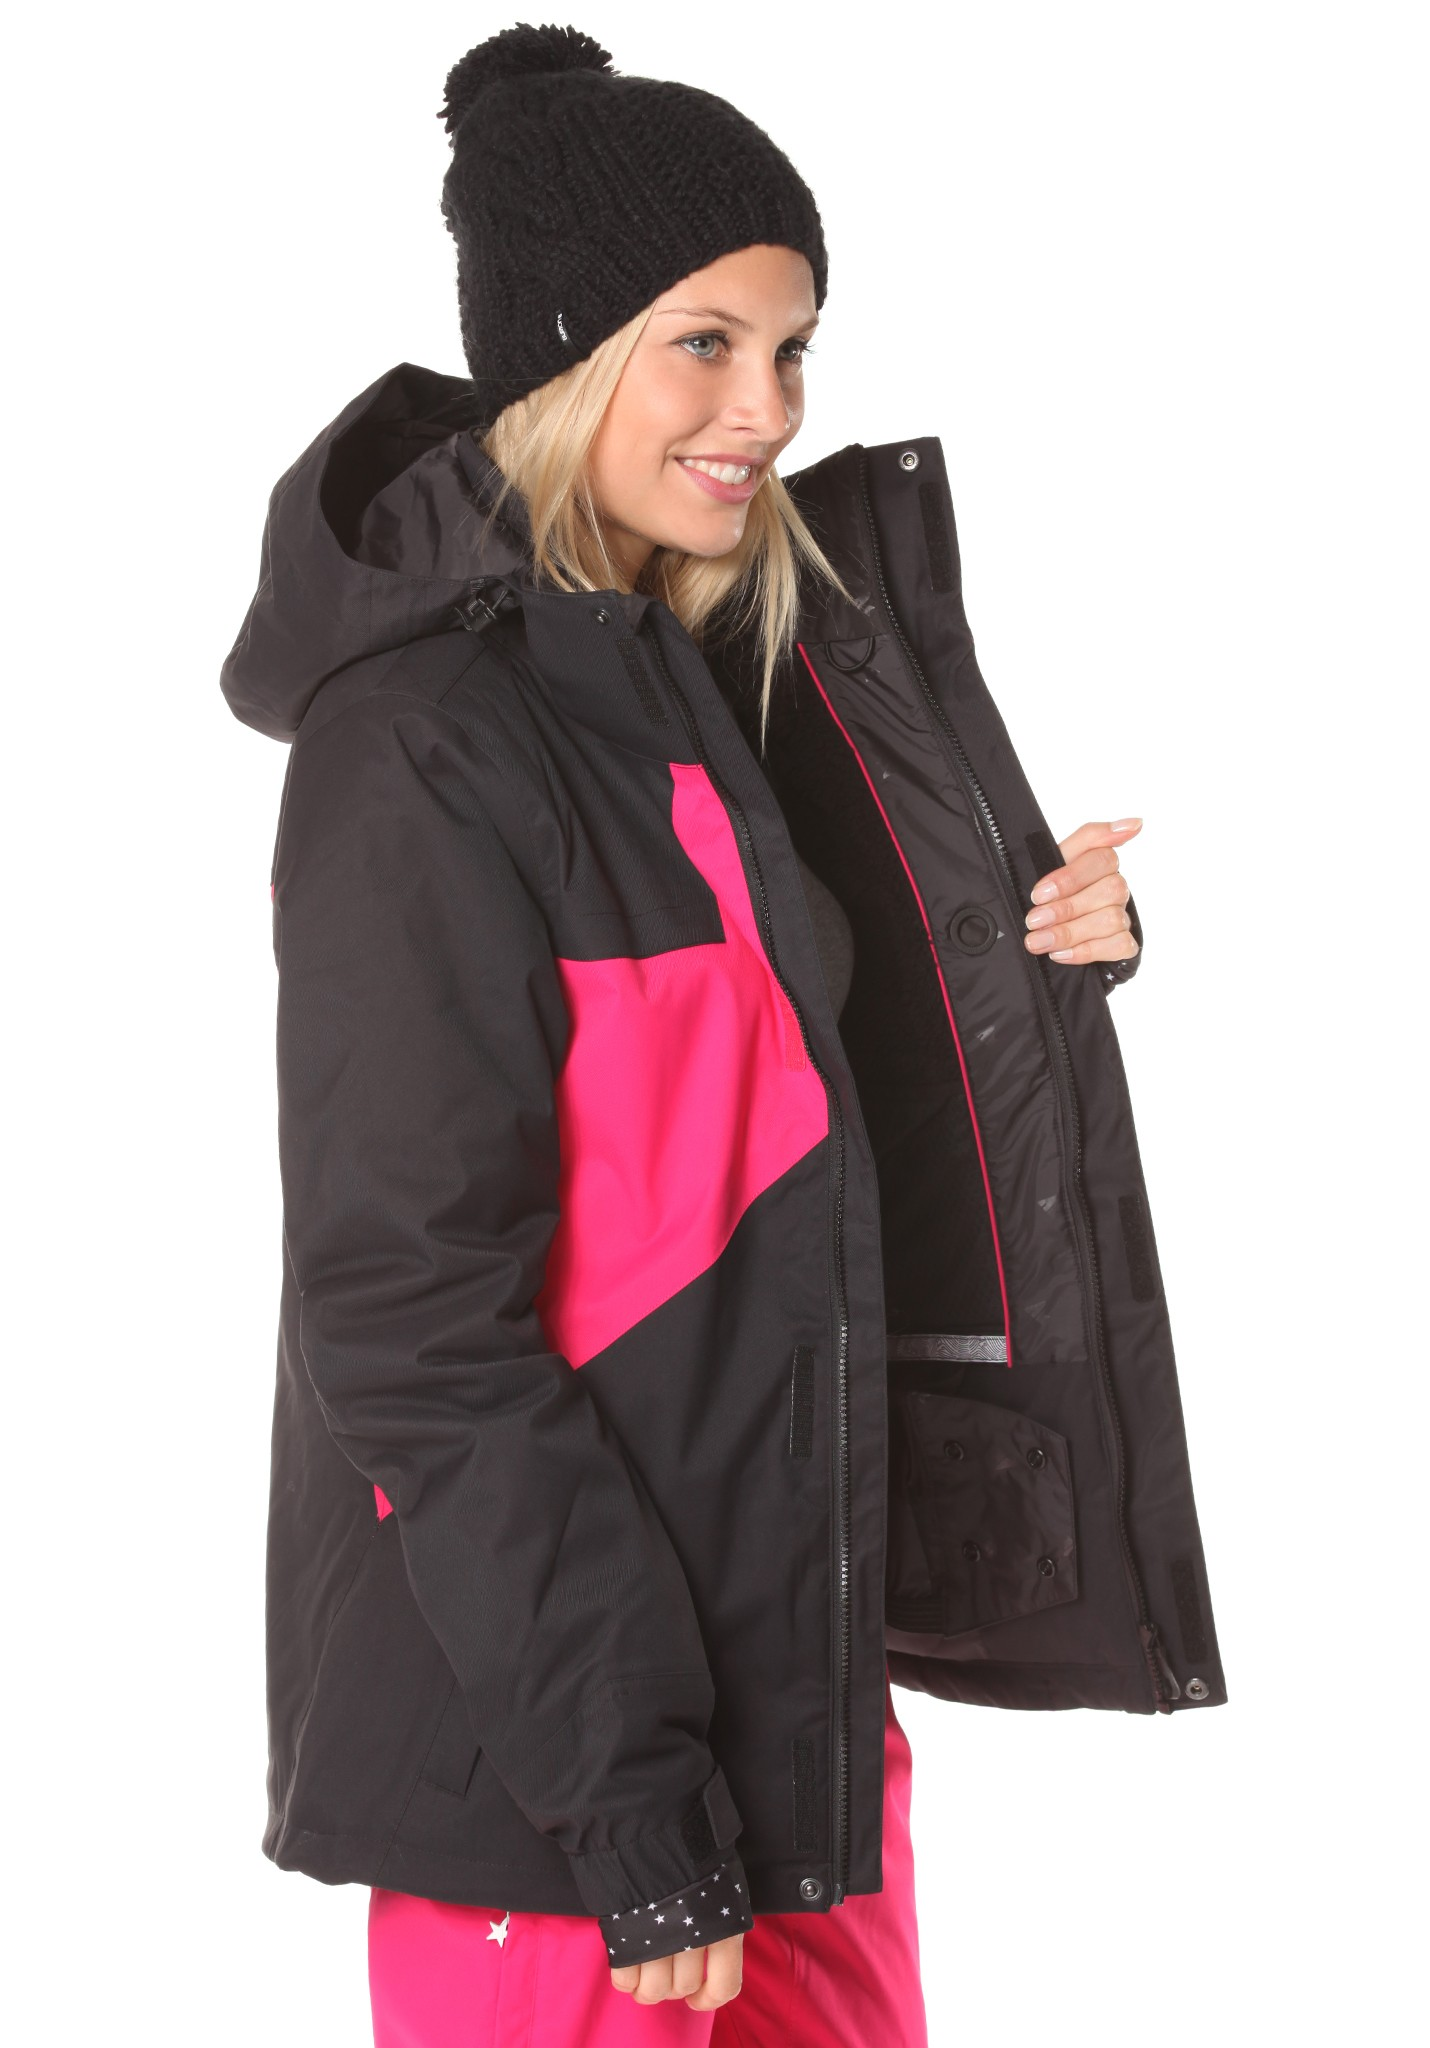 neu zimtstern snowy 15 damen snowboardjacke ebay. Black Bedroom Furniture Sets. Home Design Ideas